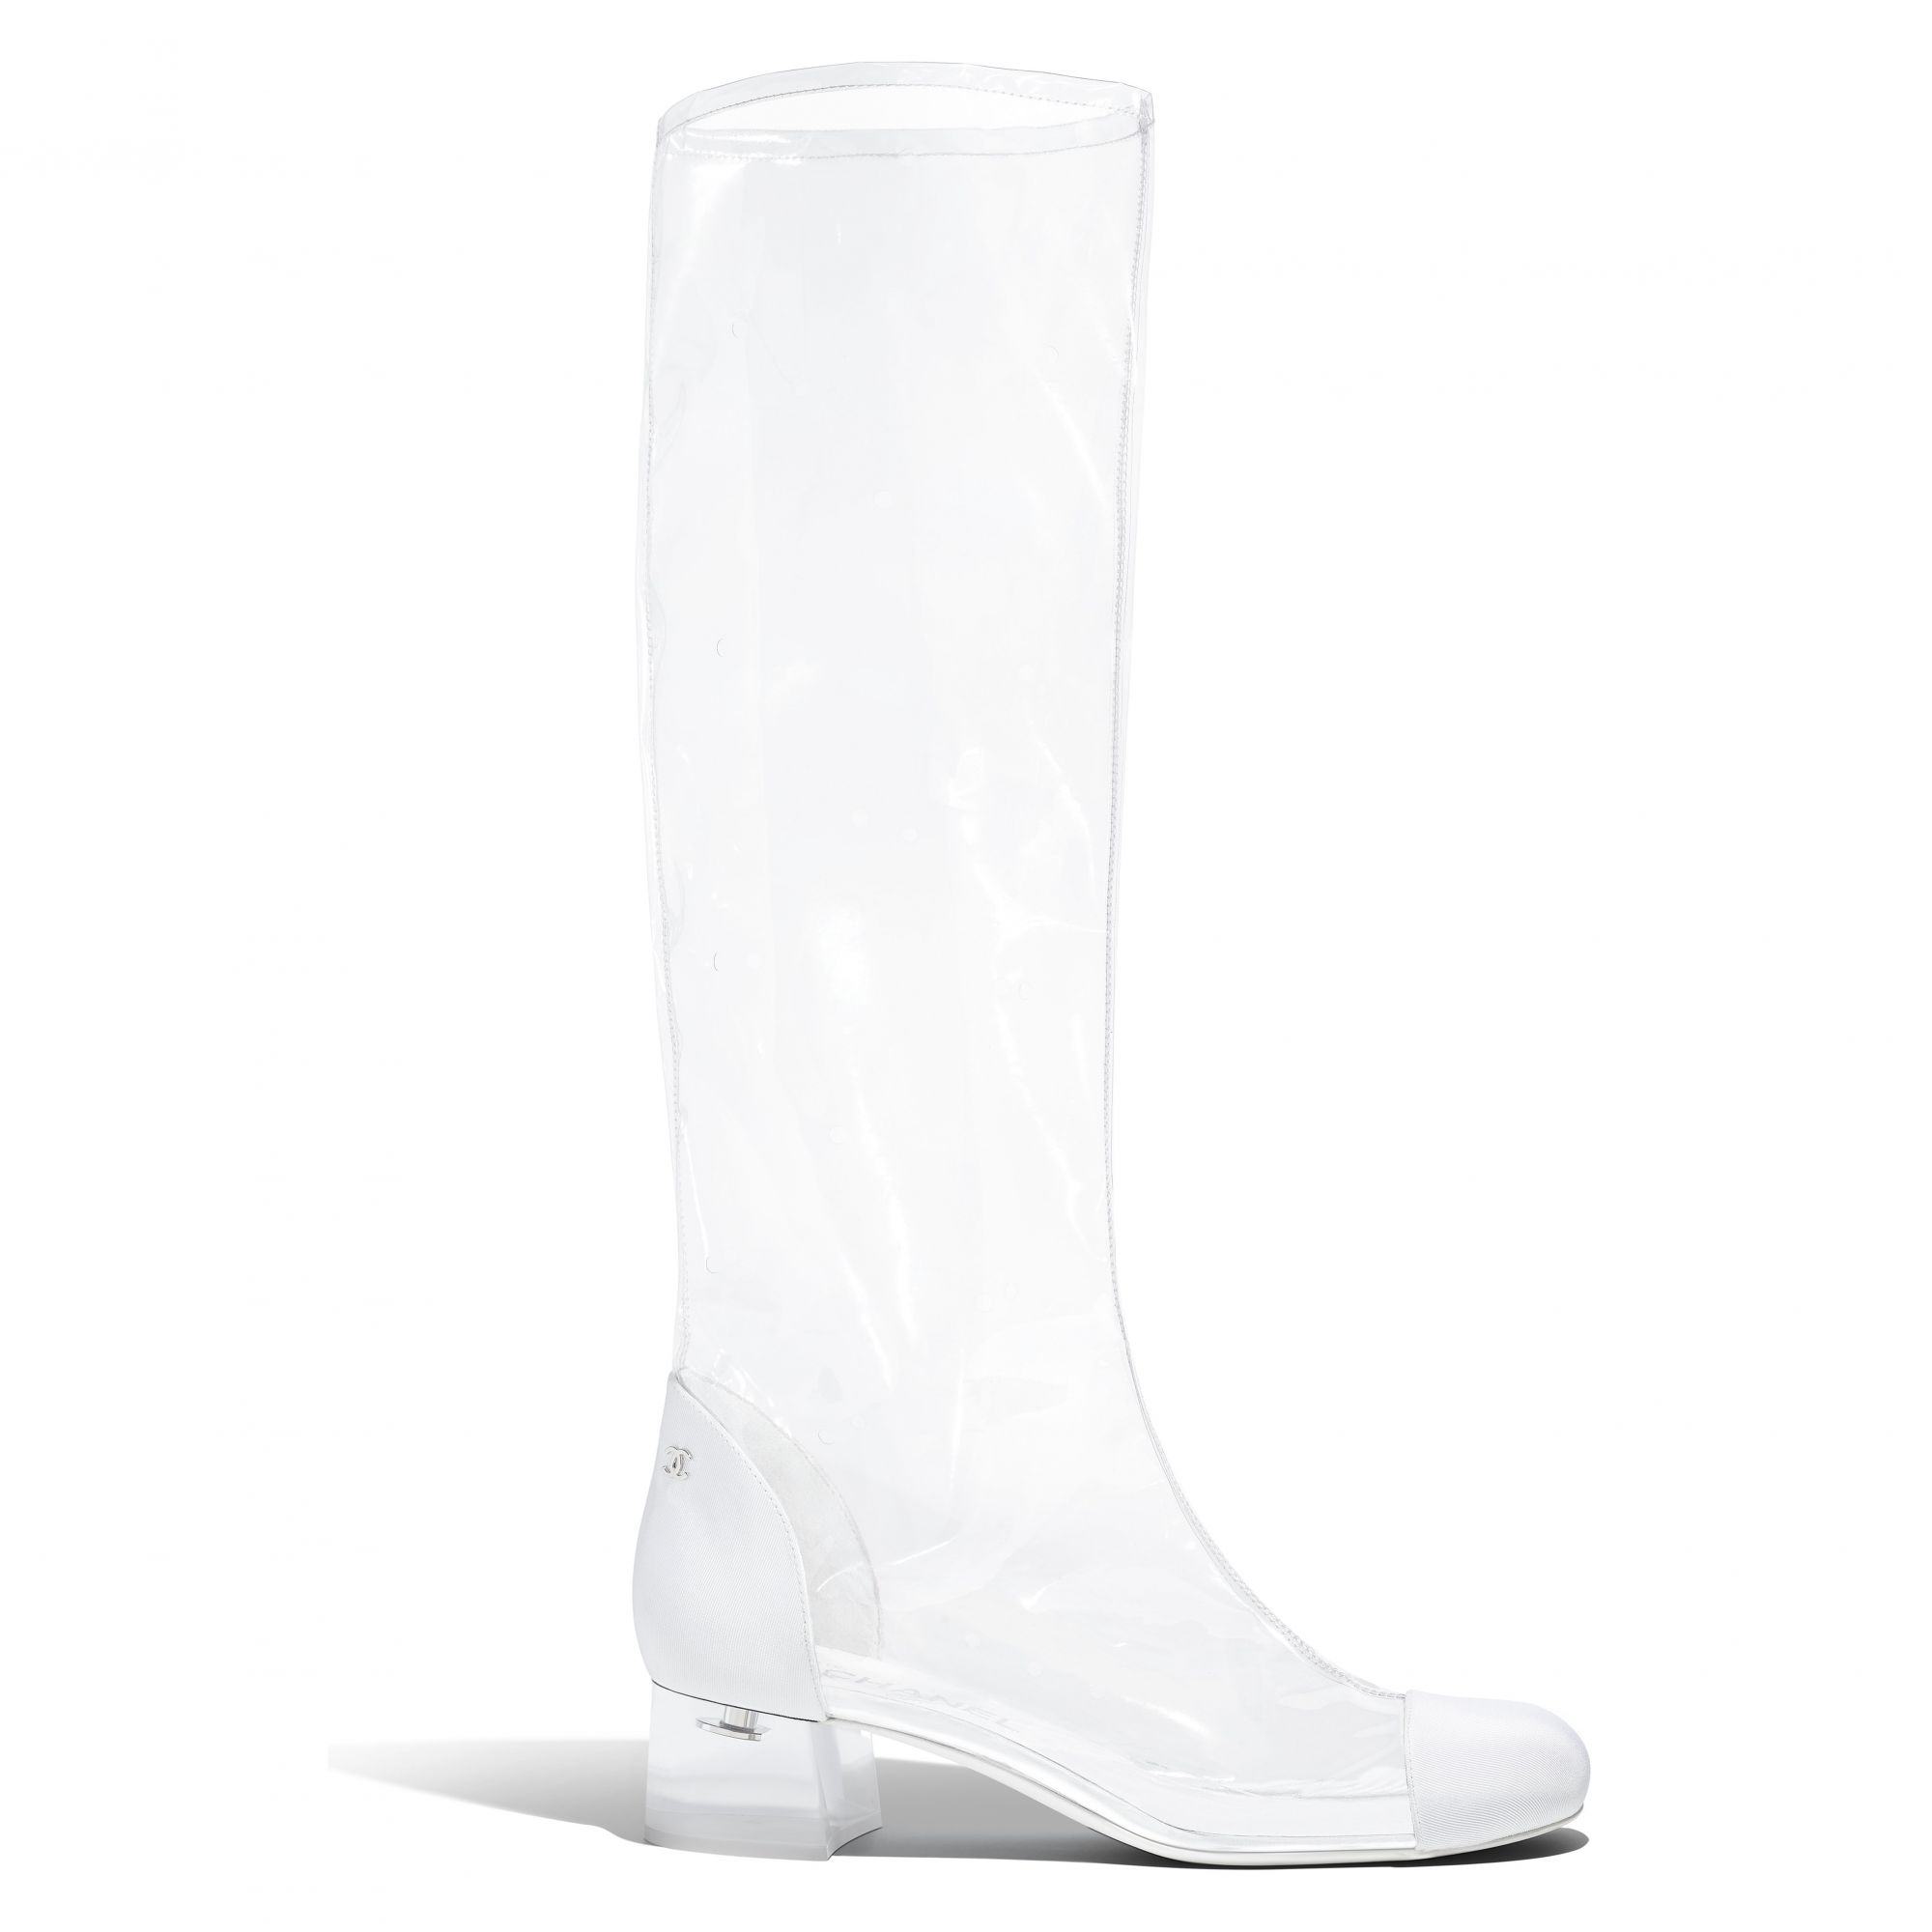 Boot in transparent PVC and white grosgrain